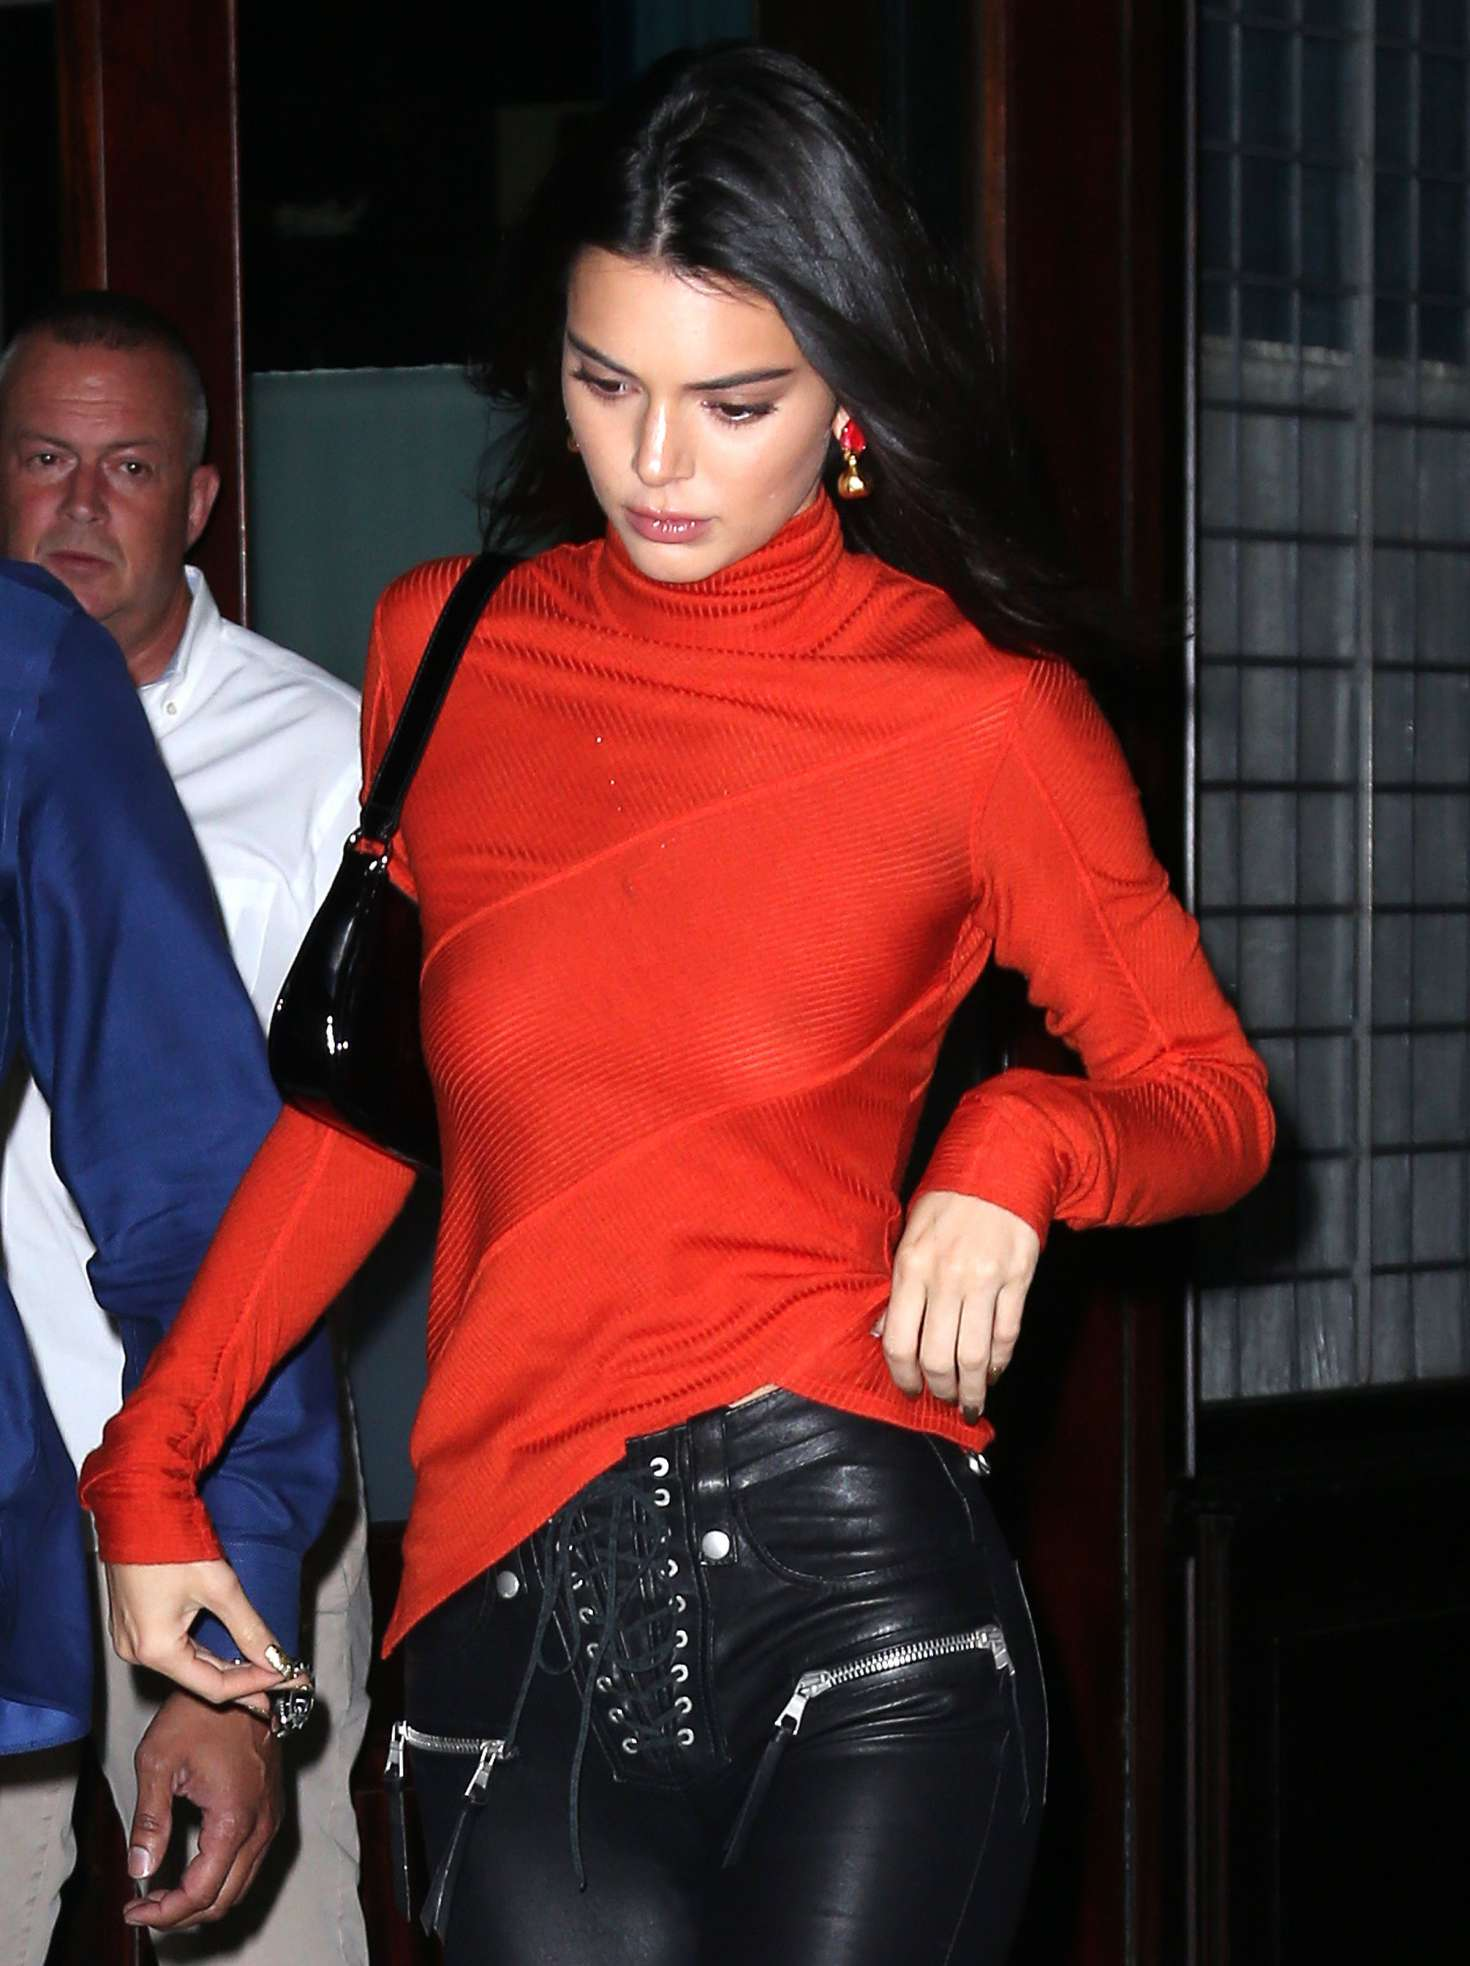 Kendall Jenner wearing a Sheer Dark Orange Red Top, With High Neck and Asymmetric Hem ,While Going Braless, to Bella Hadid's 22nd Birthday Party, in New York.